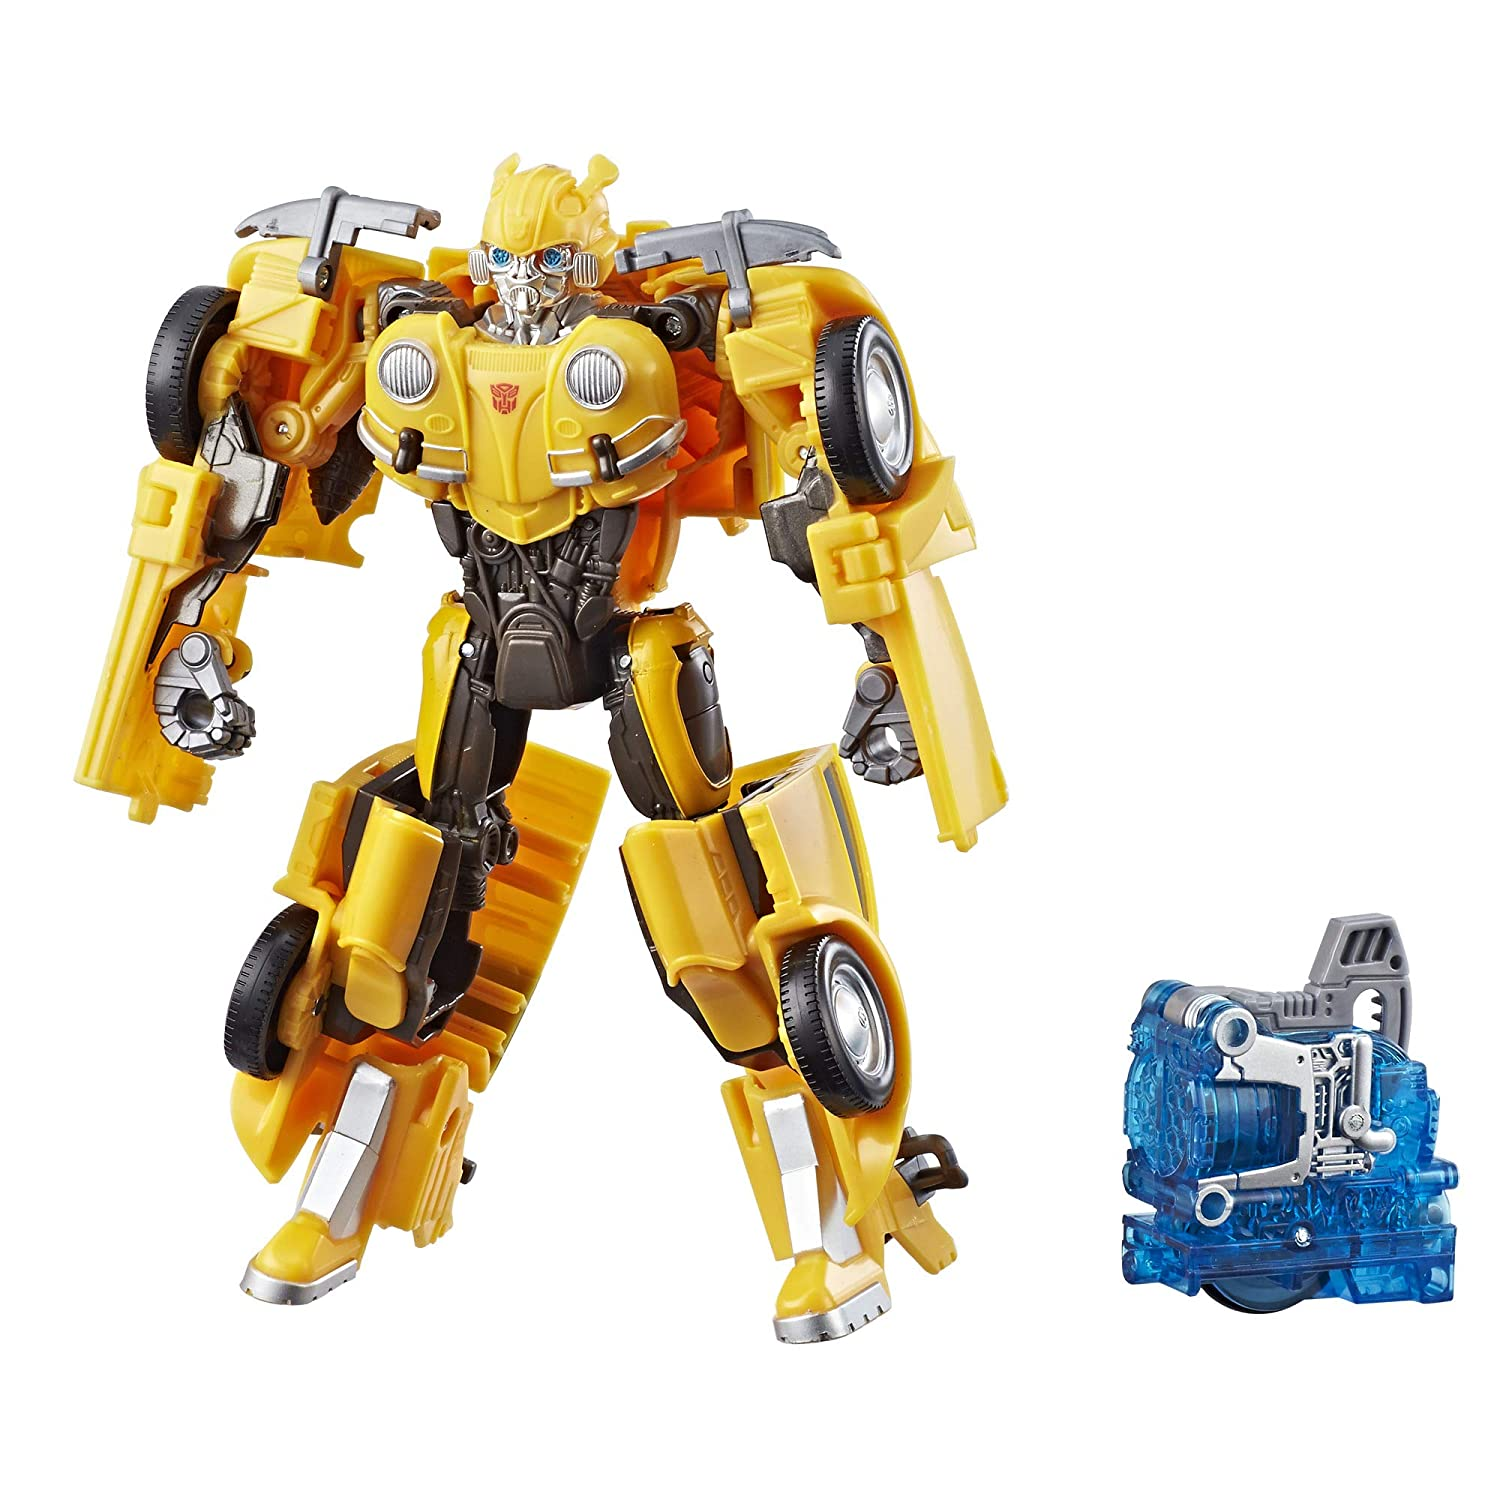 Transformers: Bumblebee Movie Toys, Energon Igniters Nitro Bumblebee Action Figure - Included Core Powers Driving Action - Toys for Kids 6 and Up, 7-inch Hasbro E0763